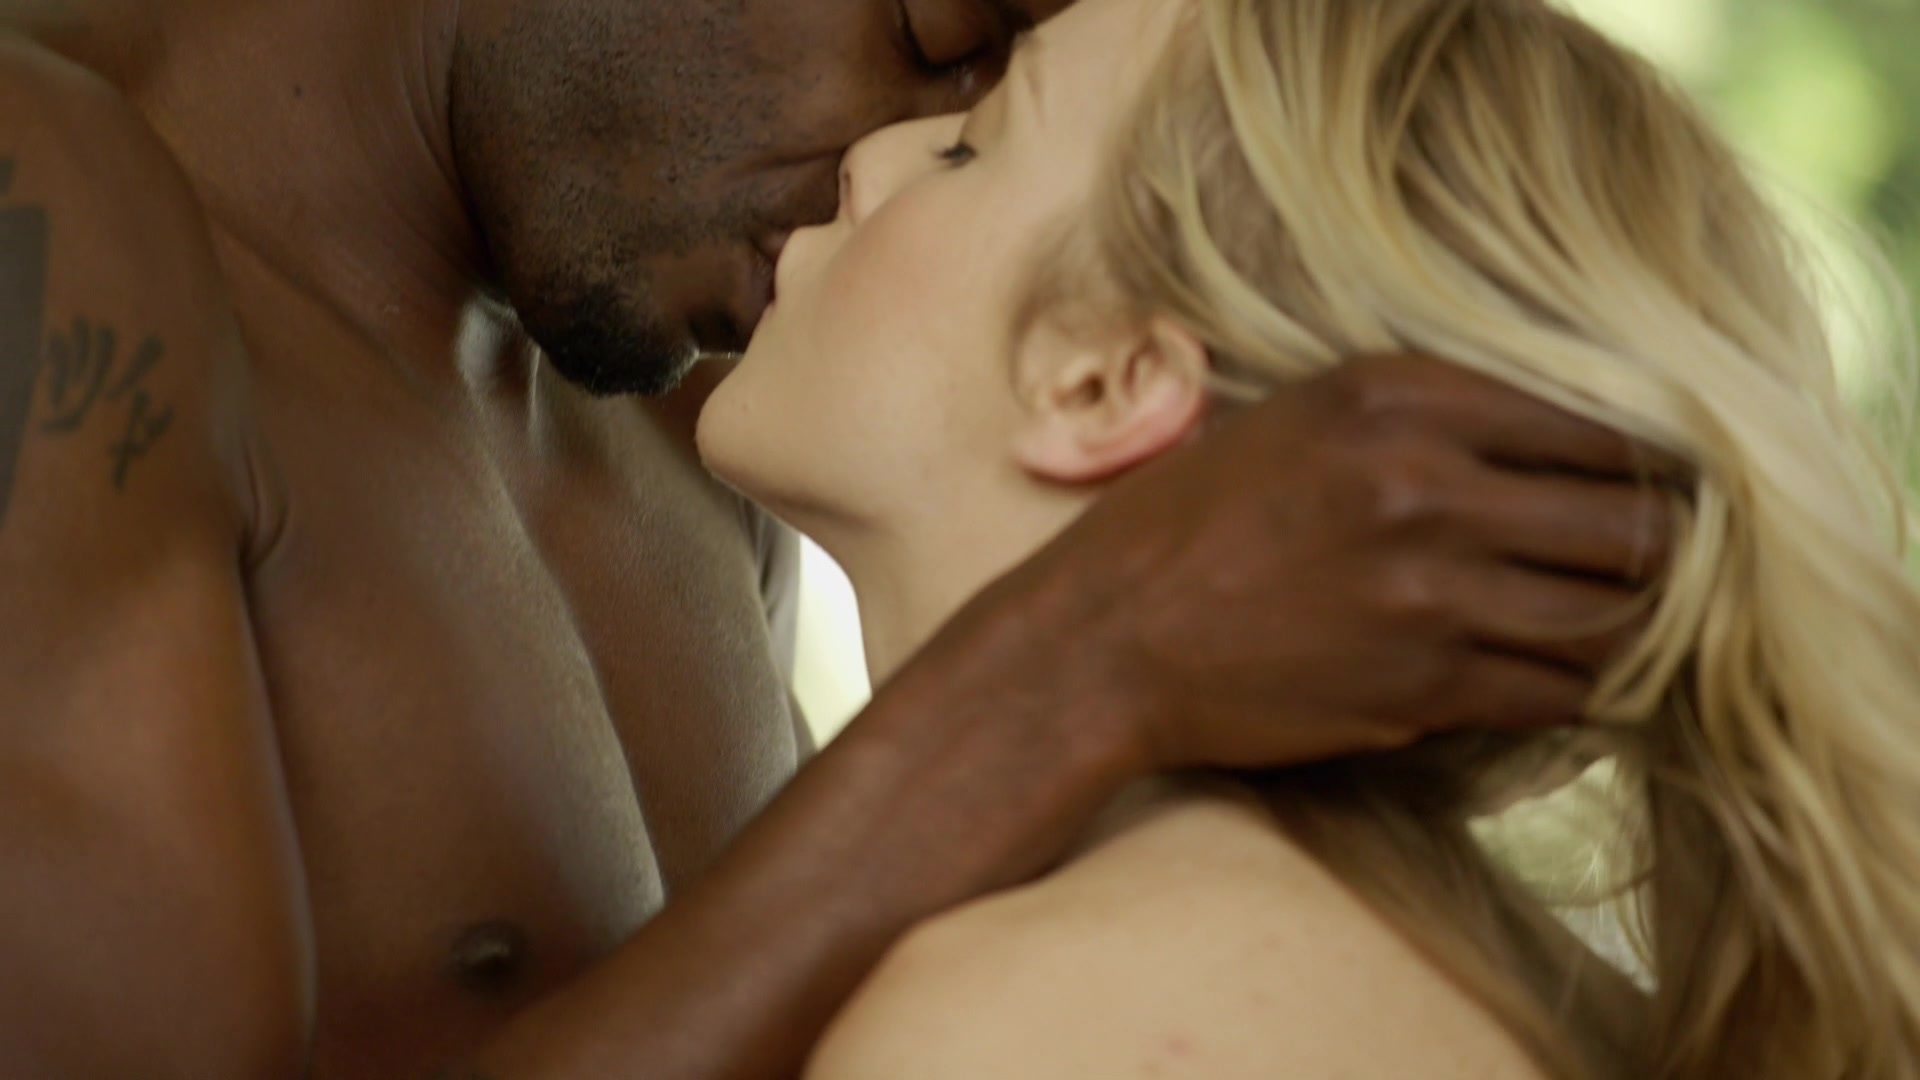 interracial sex orgies hot cartoon porn gif